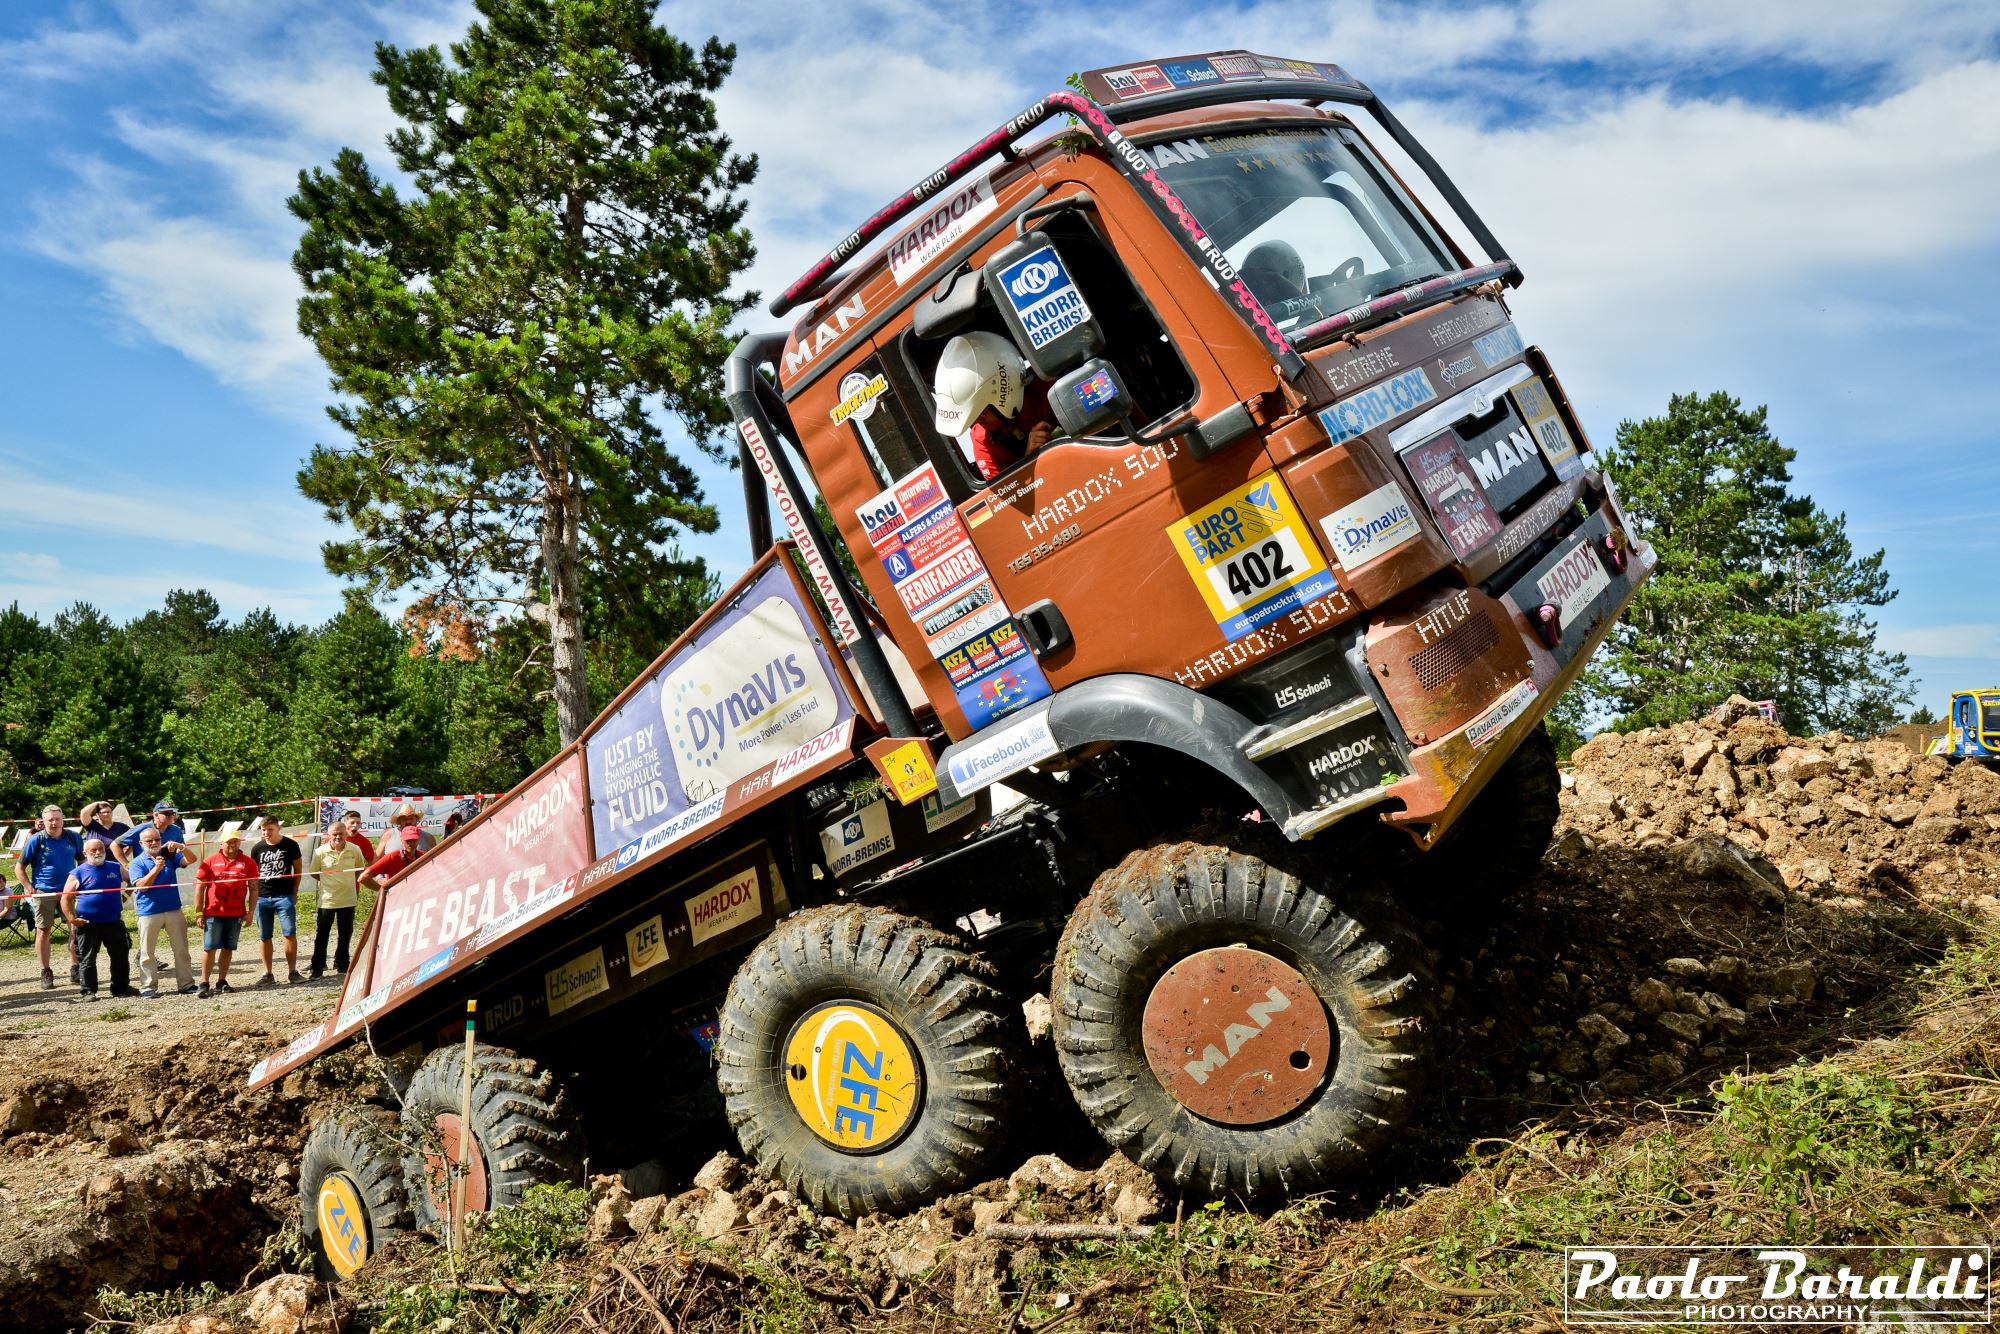 The hardest trial in Europe! Europa Truck Trial goes into the 32 season!